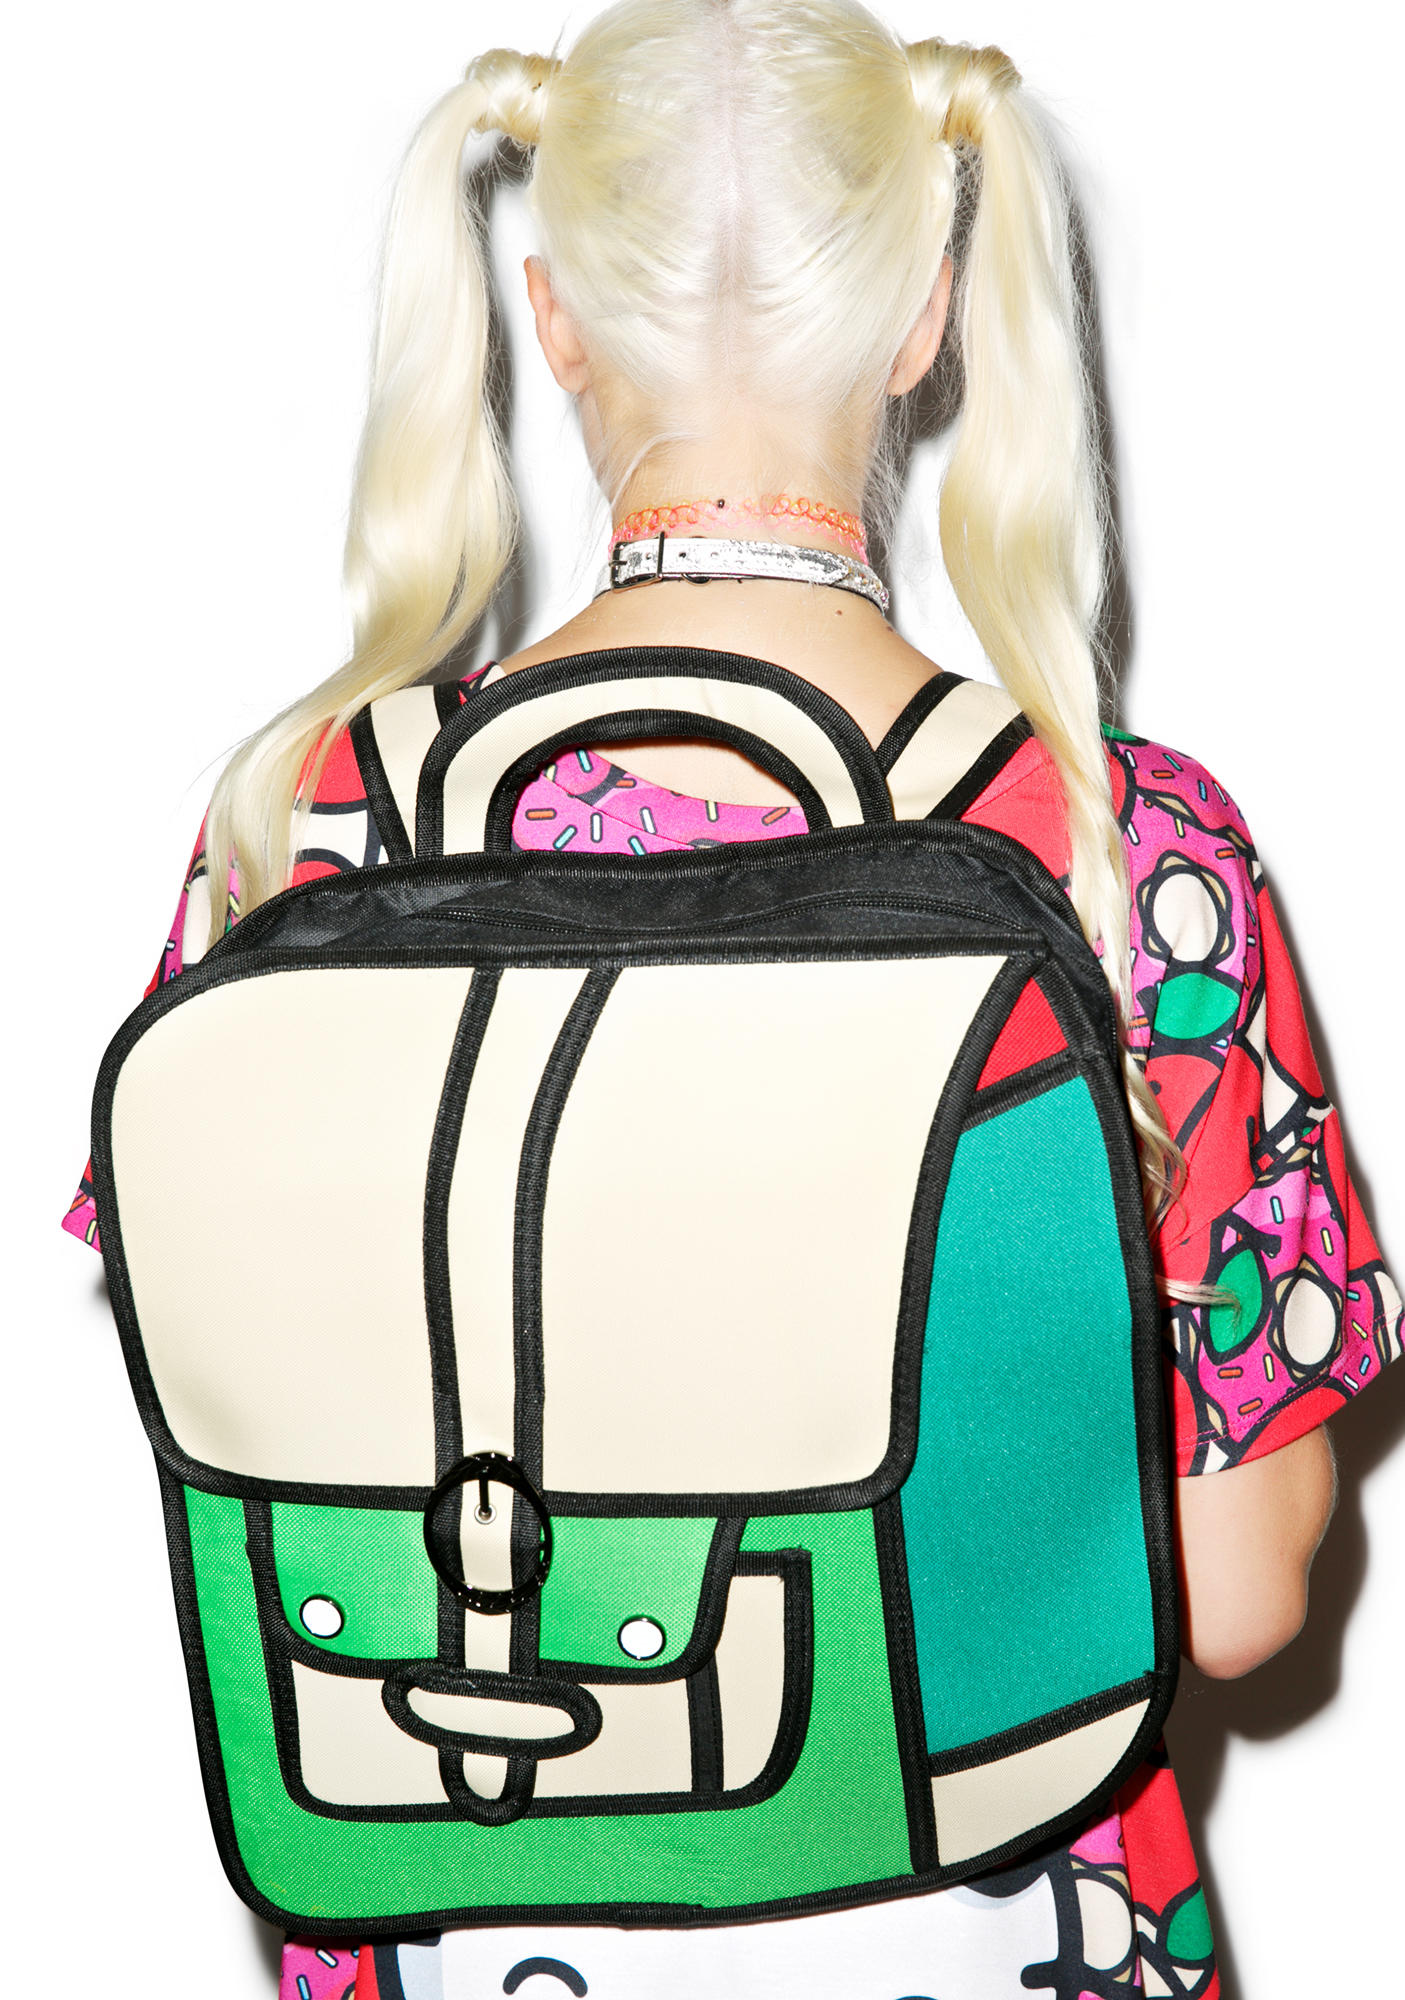 dfdf3ce9c2 Dream Bags Time for Recess Cartoon Backpack Green One